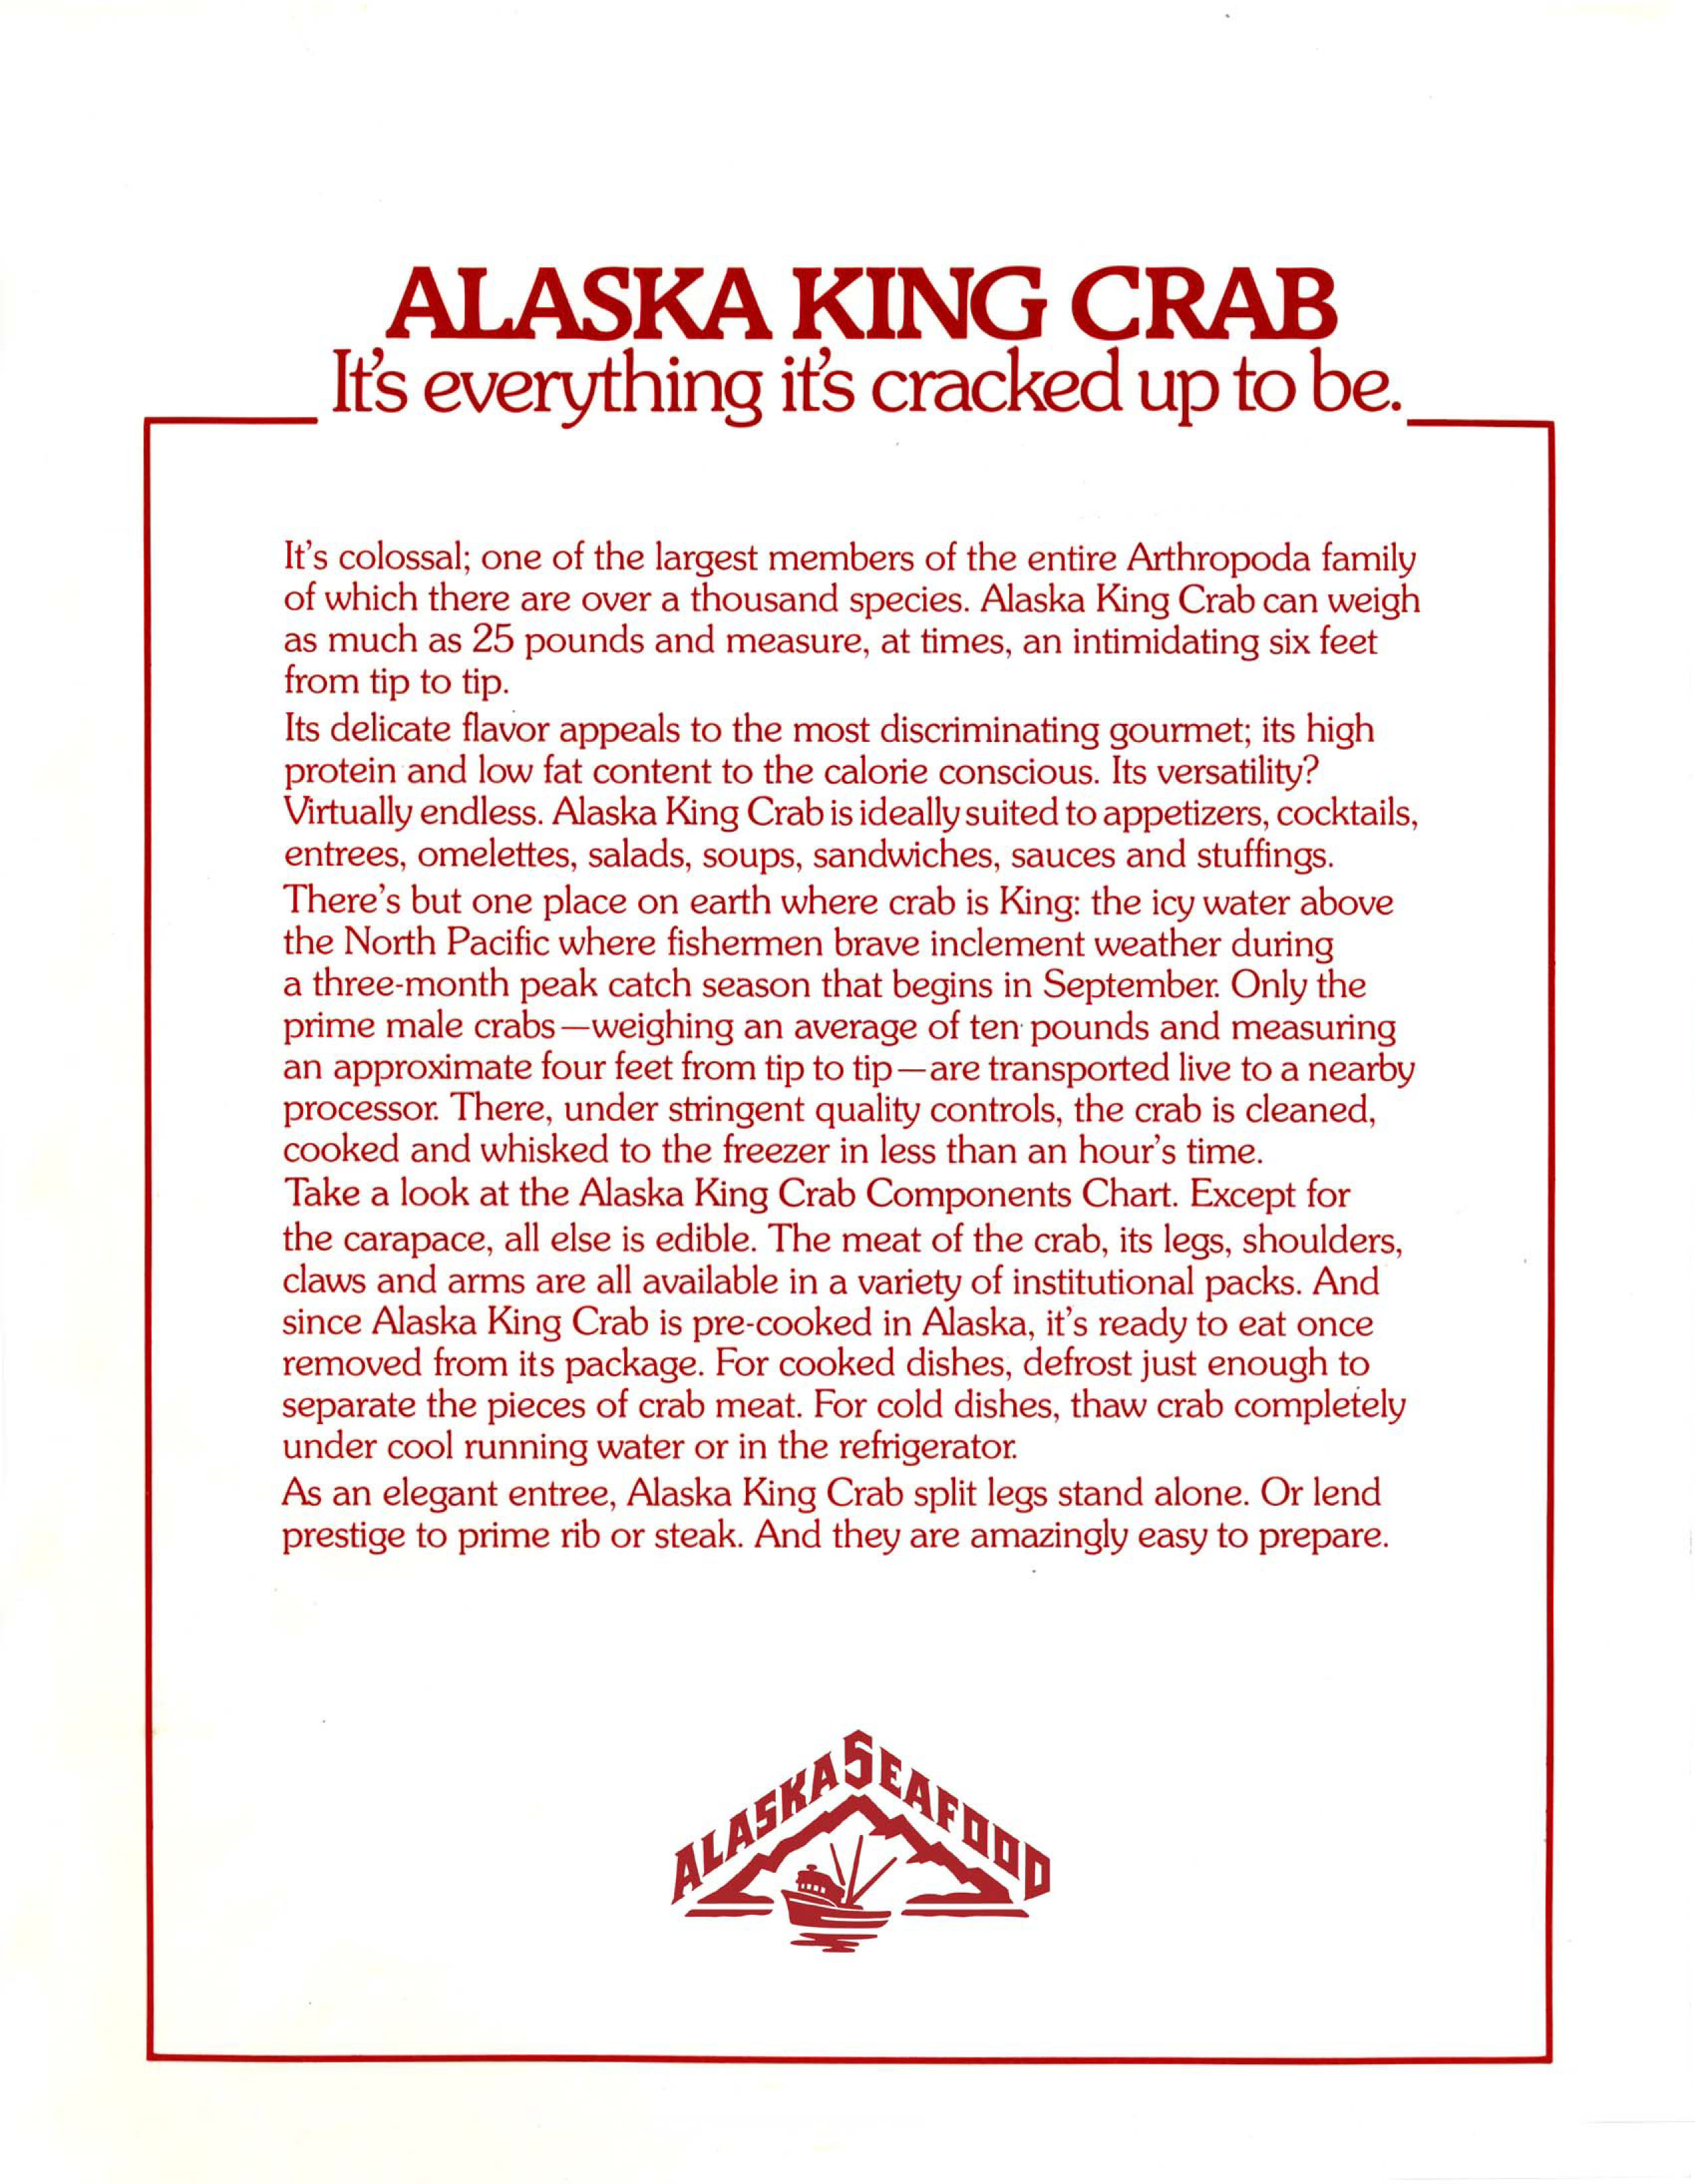 king crab front 1.eps